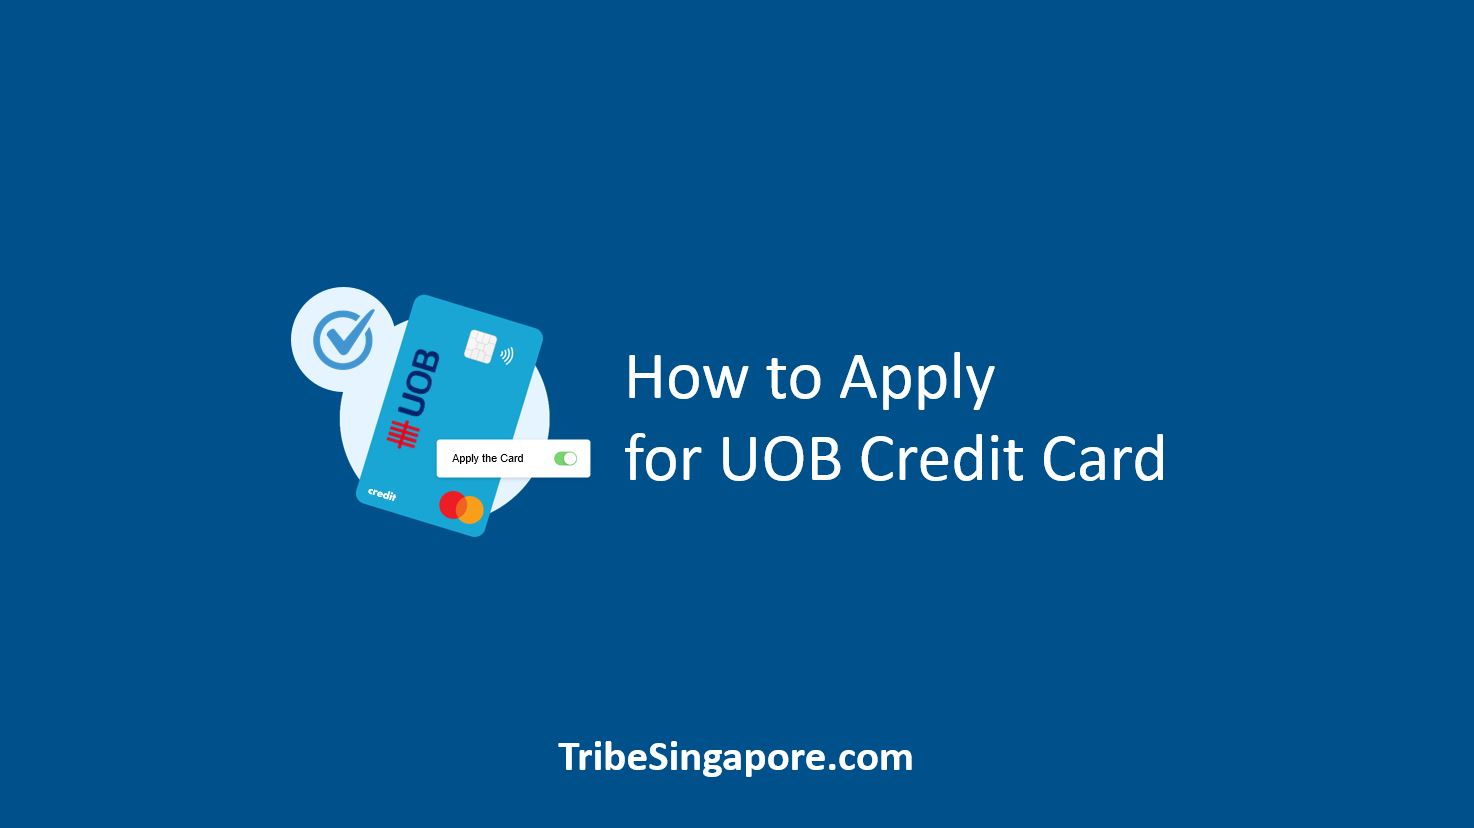 How to Apply for UOB Credit Card